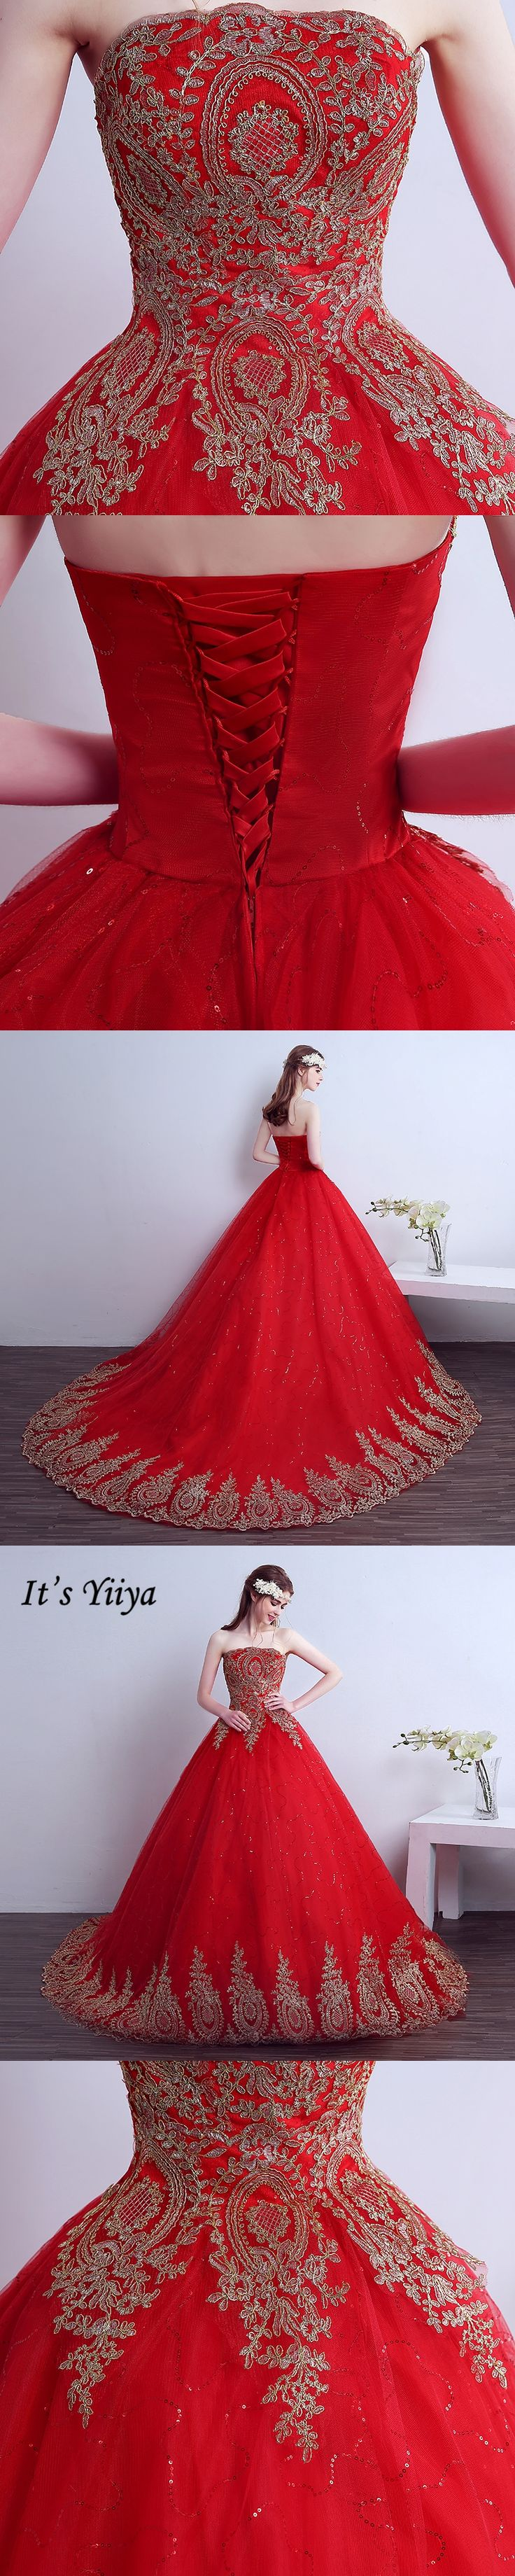 2017 New Style Real Photo Strapless Red Sweep Brush Train Golden Lace Trailing Wedding Dress Custom Made Free Shipping XXN141T